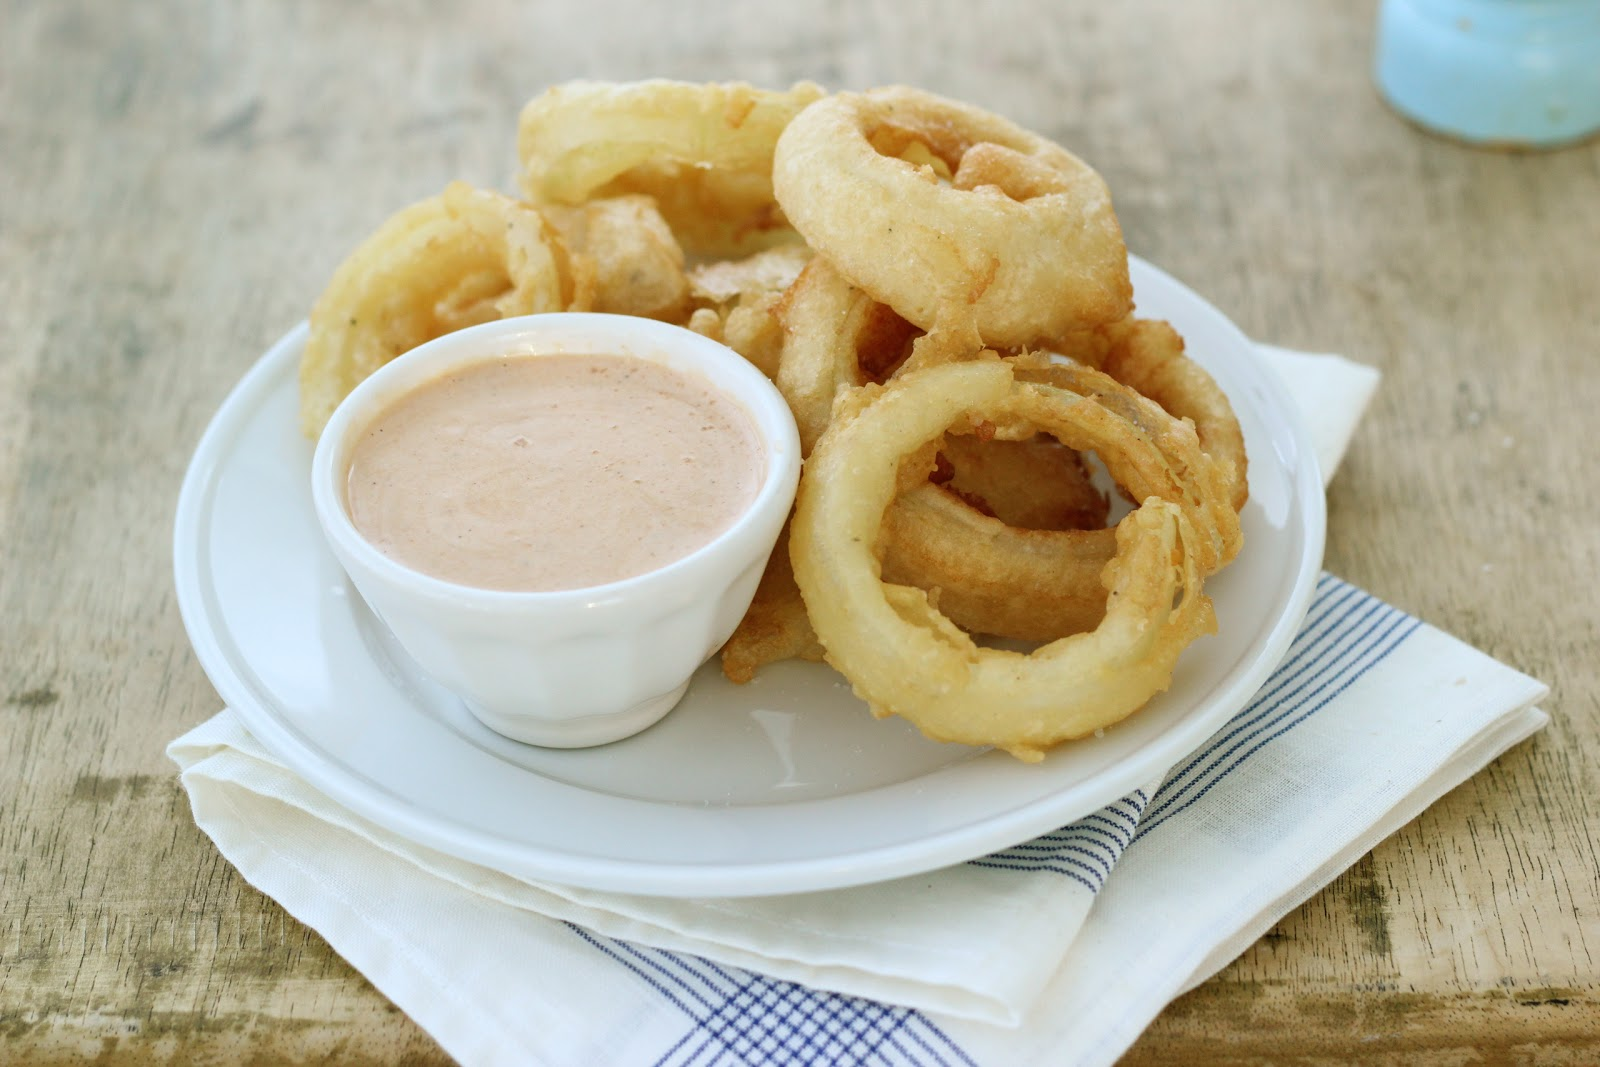 ... Steffens Hobick: Chipotle Dipping Sauce for beer-battered onion rings